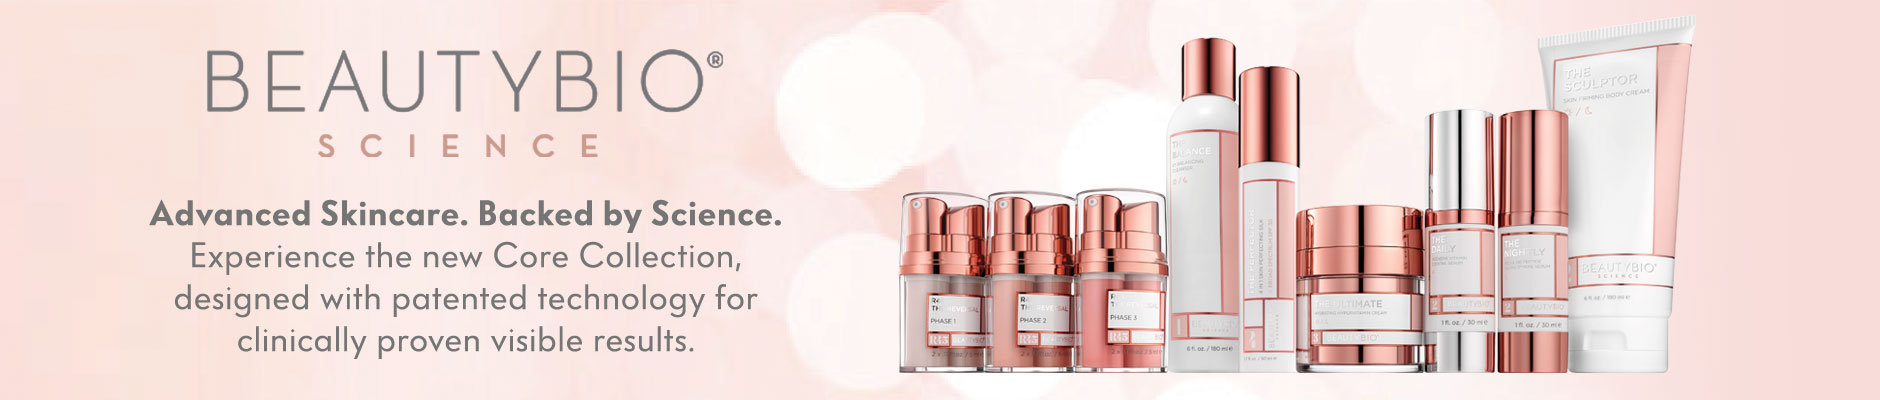 Beautybio science - advanced skin care backed by anti-aging technology